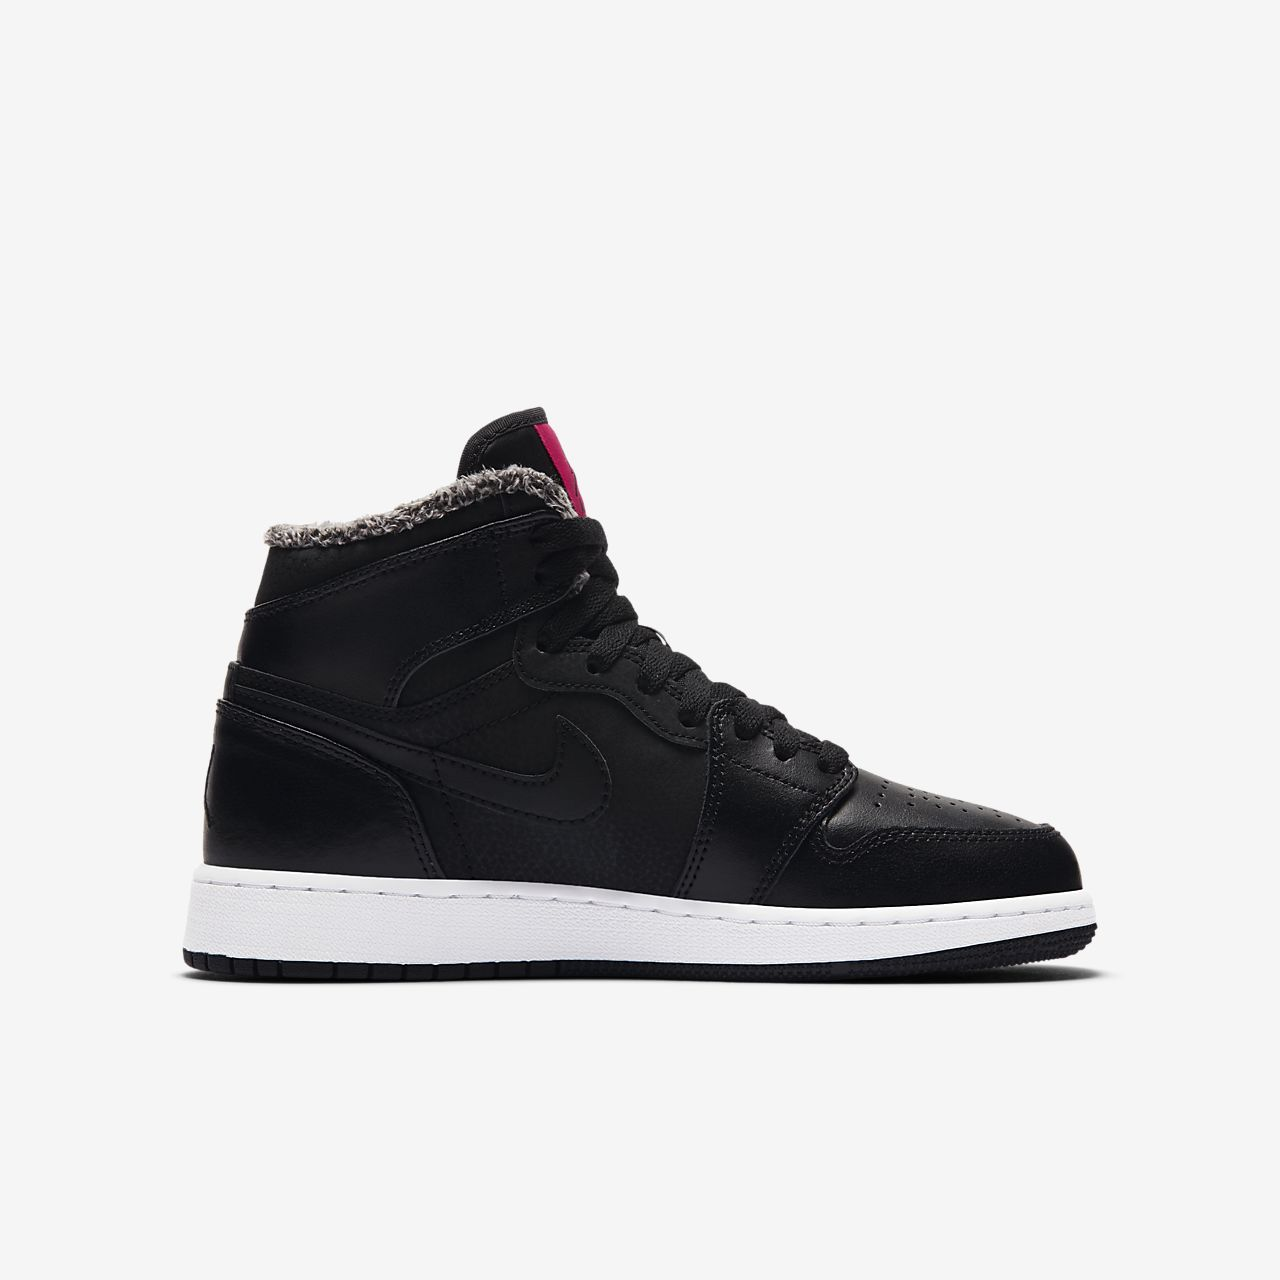 jordan retro 1 black nz